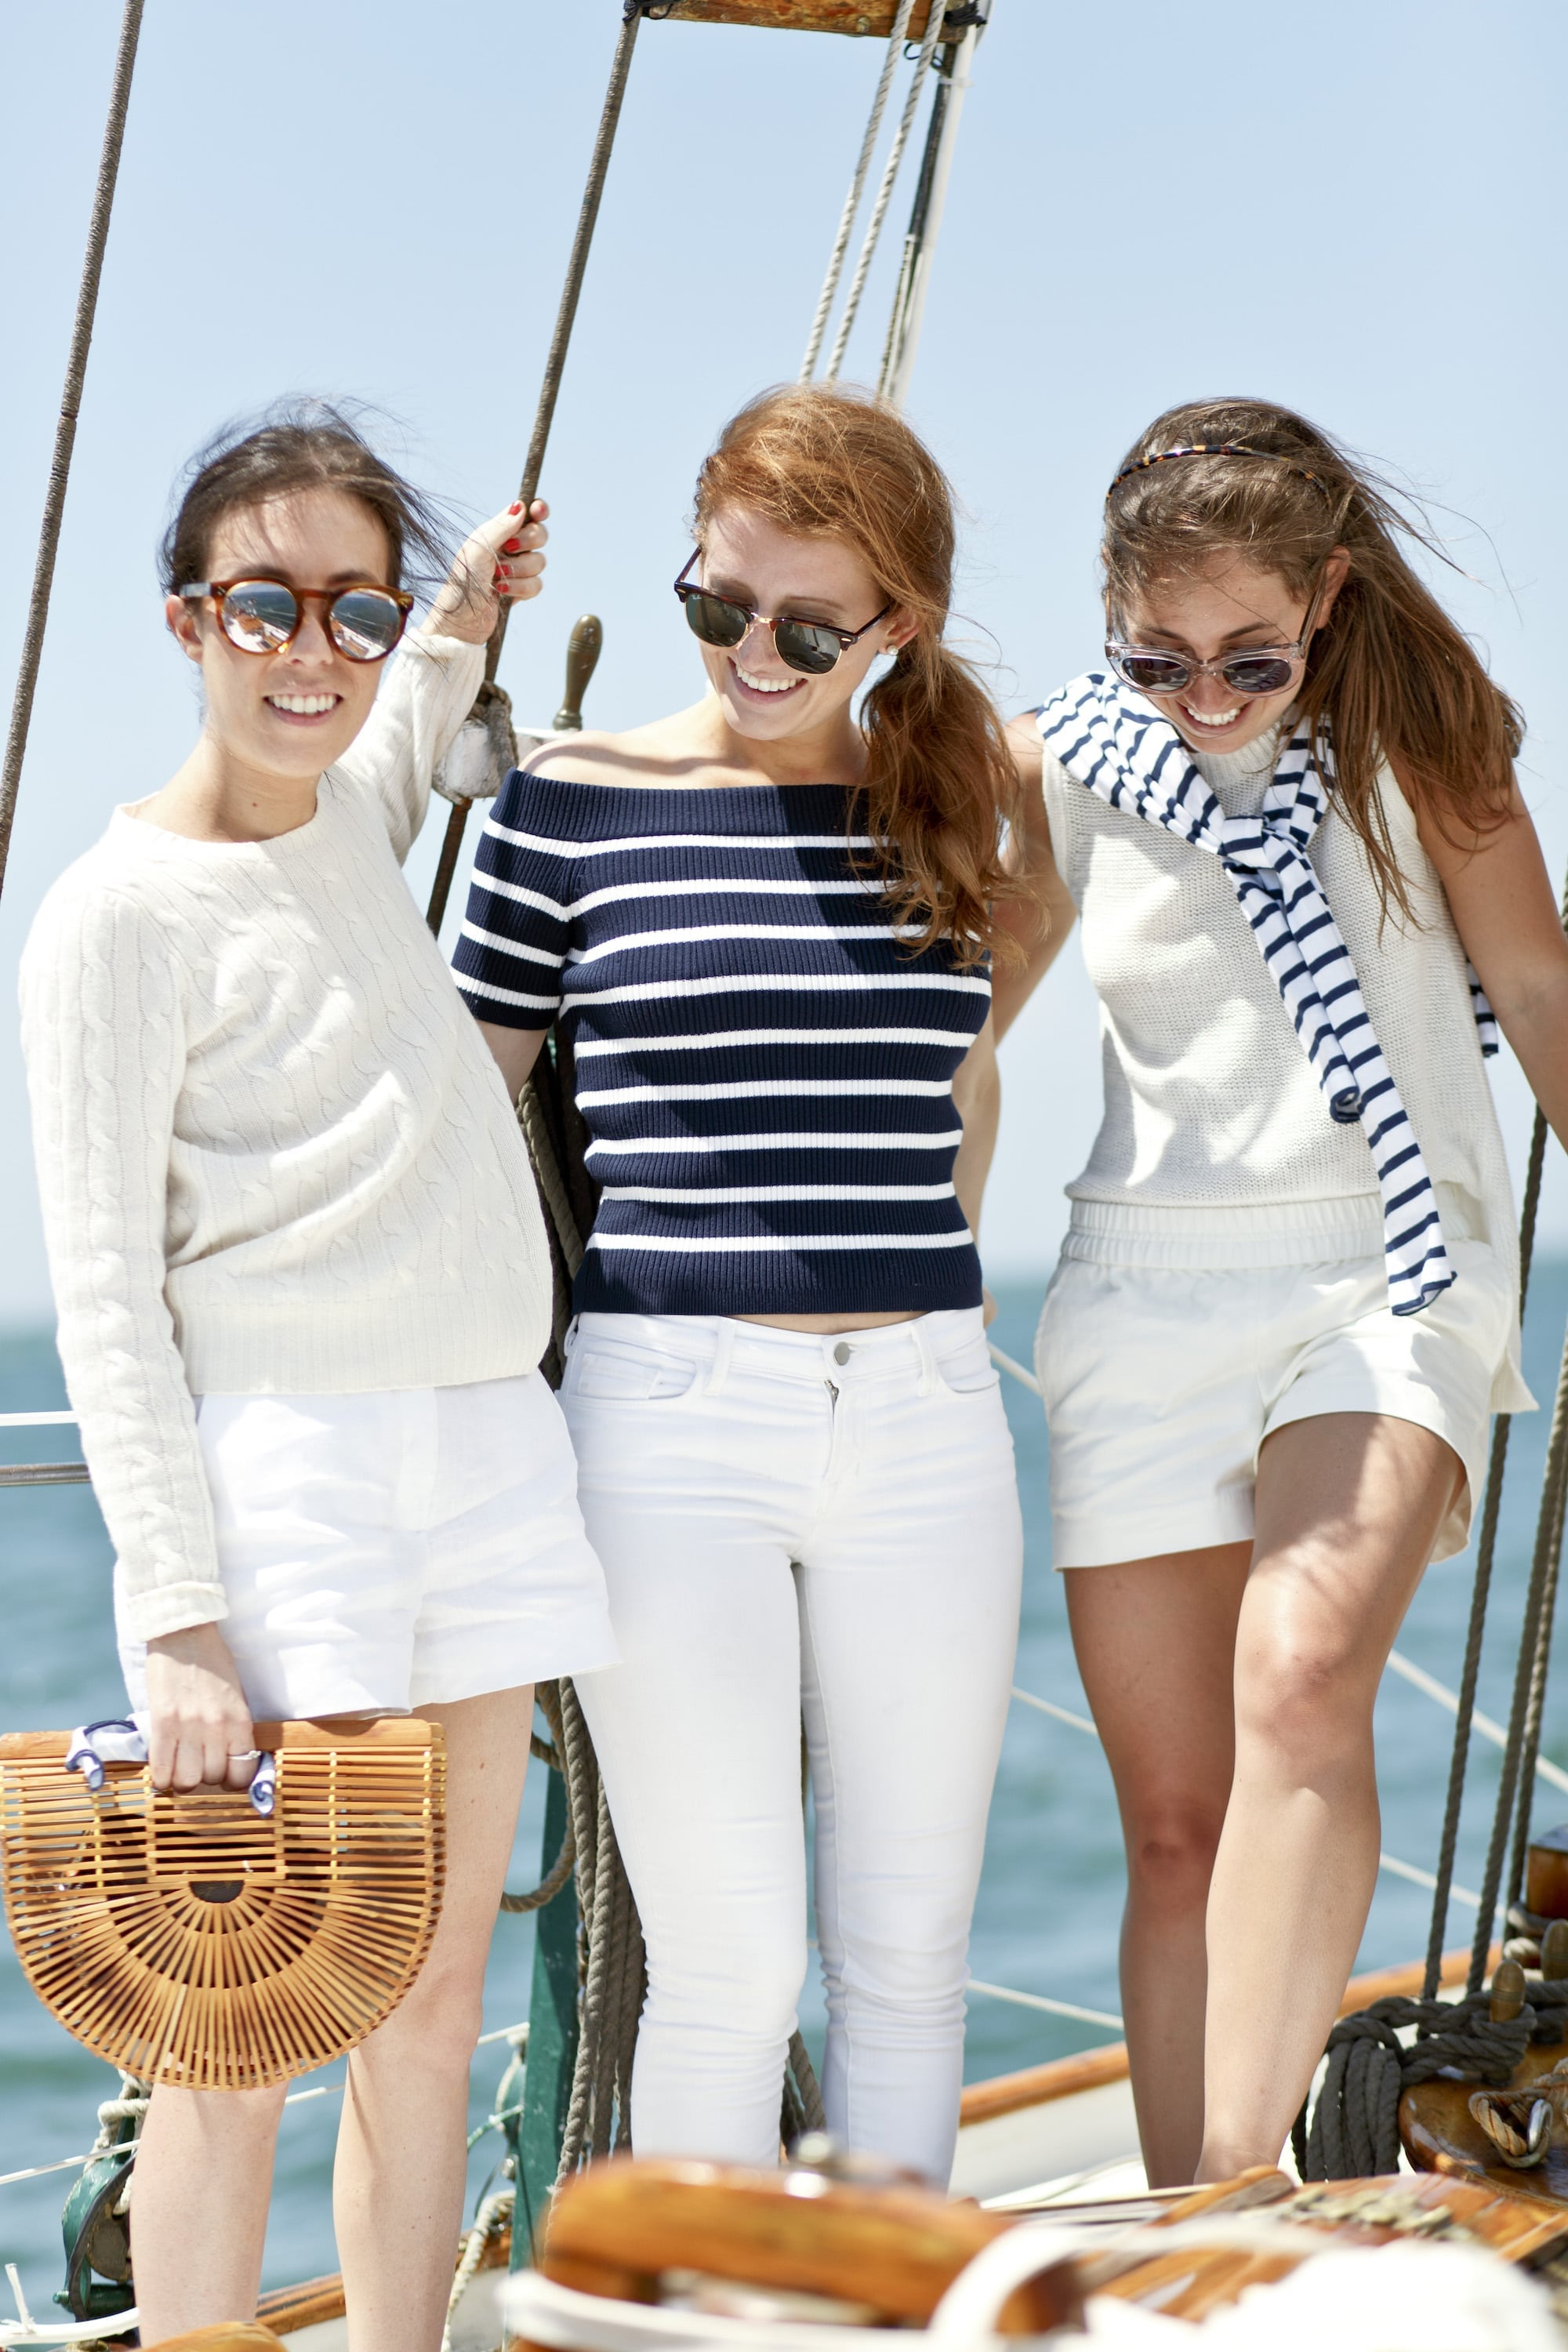 Amy, Mackenzie and Ali in Stripes and White